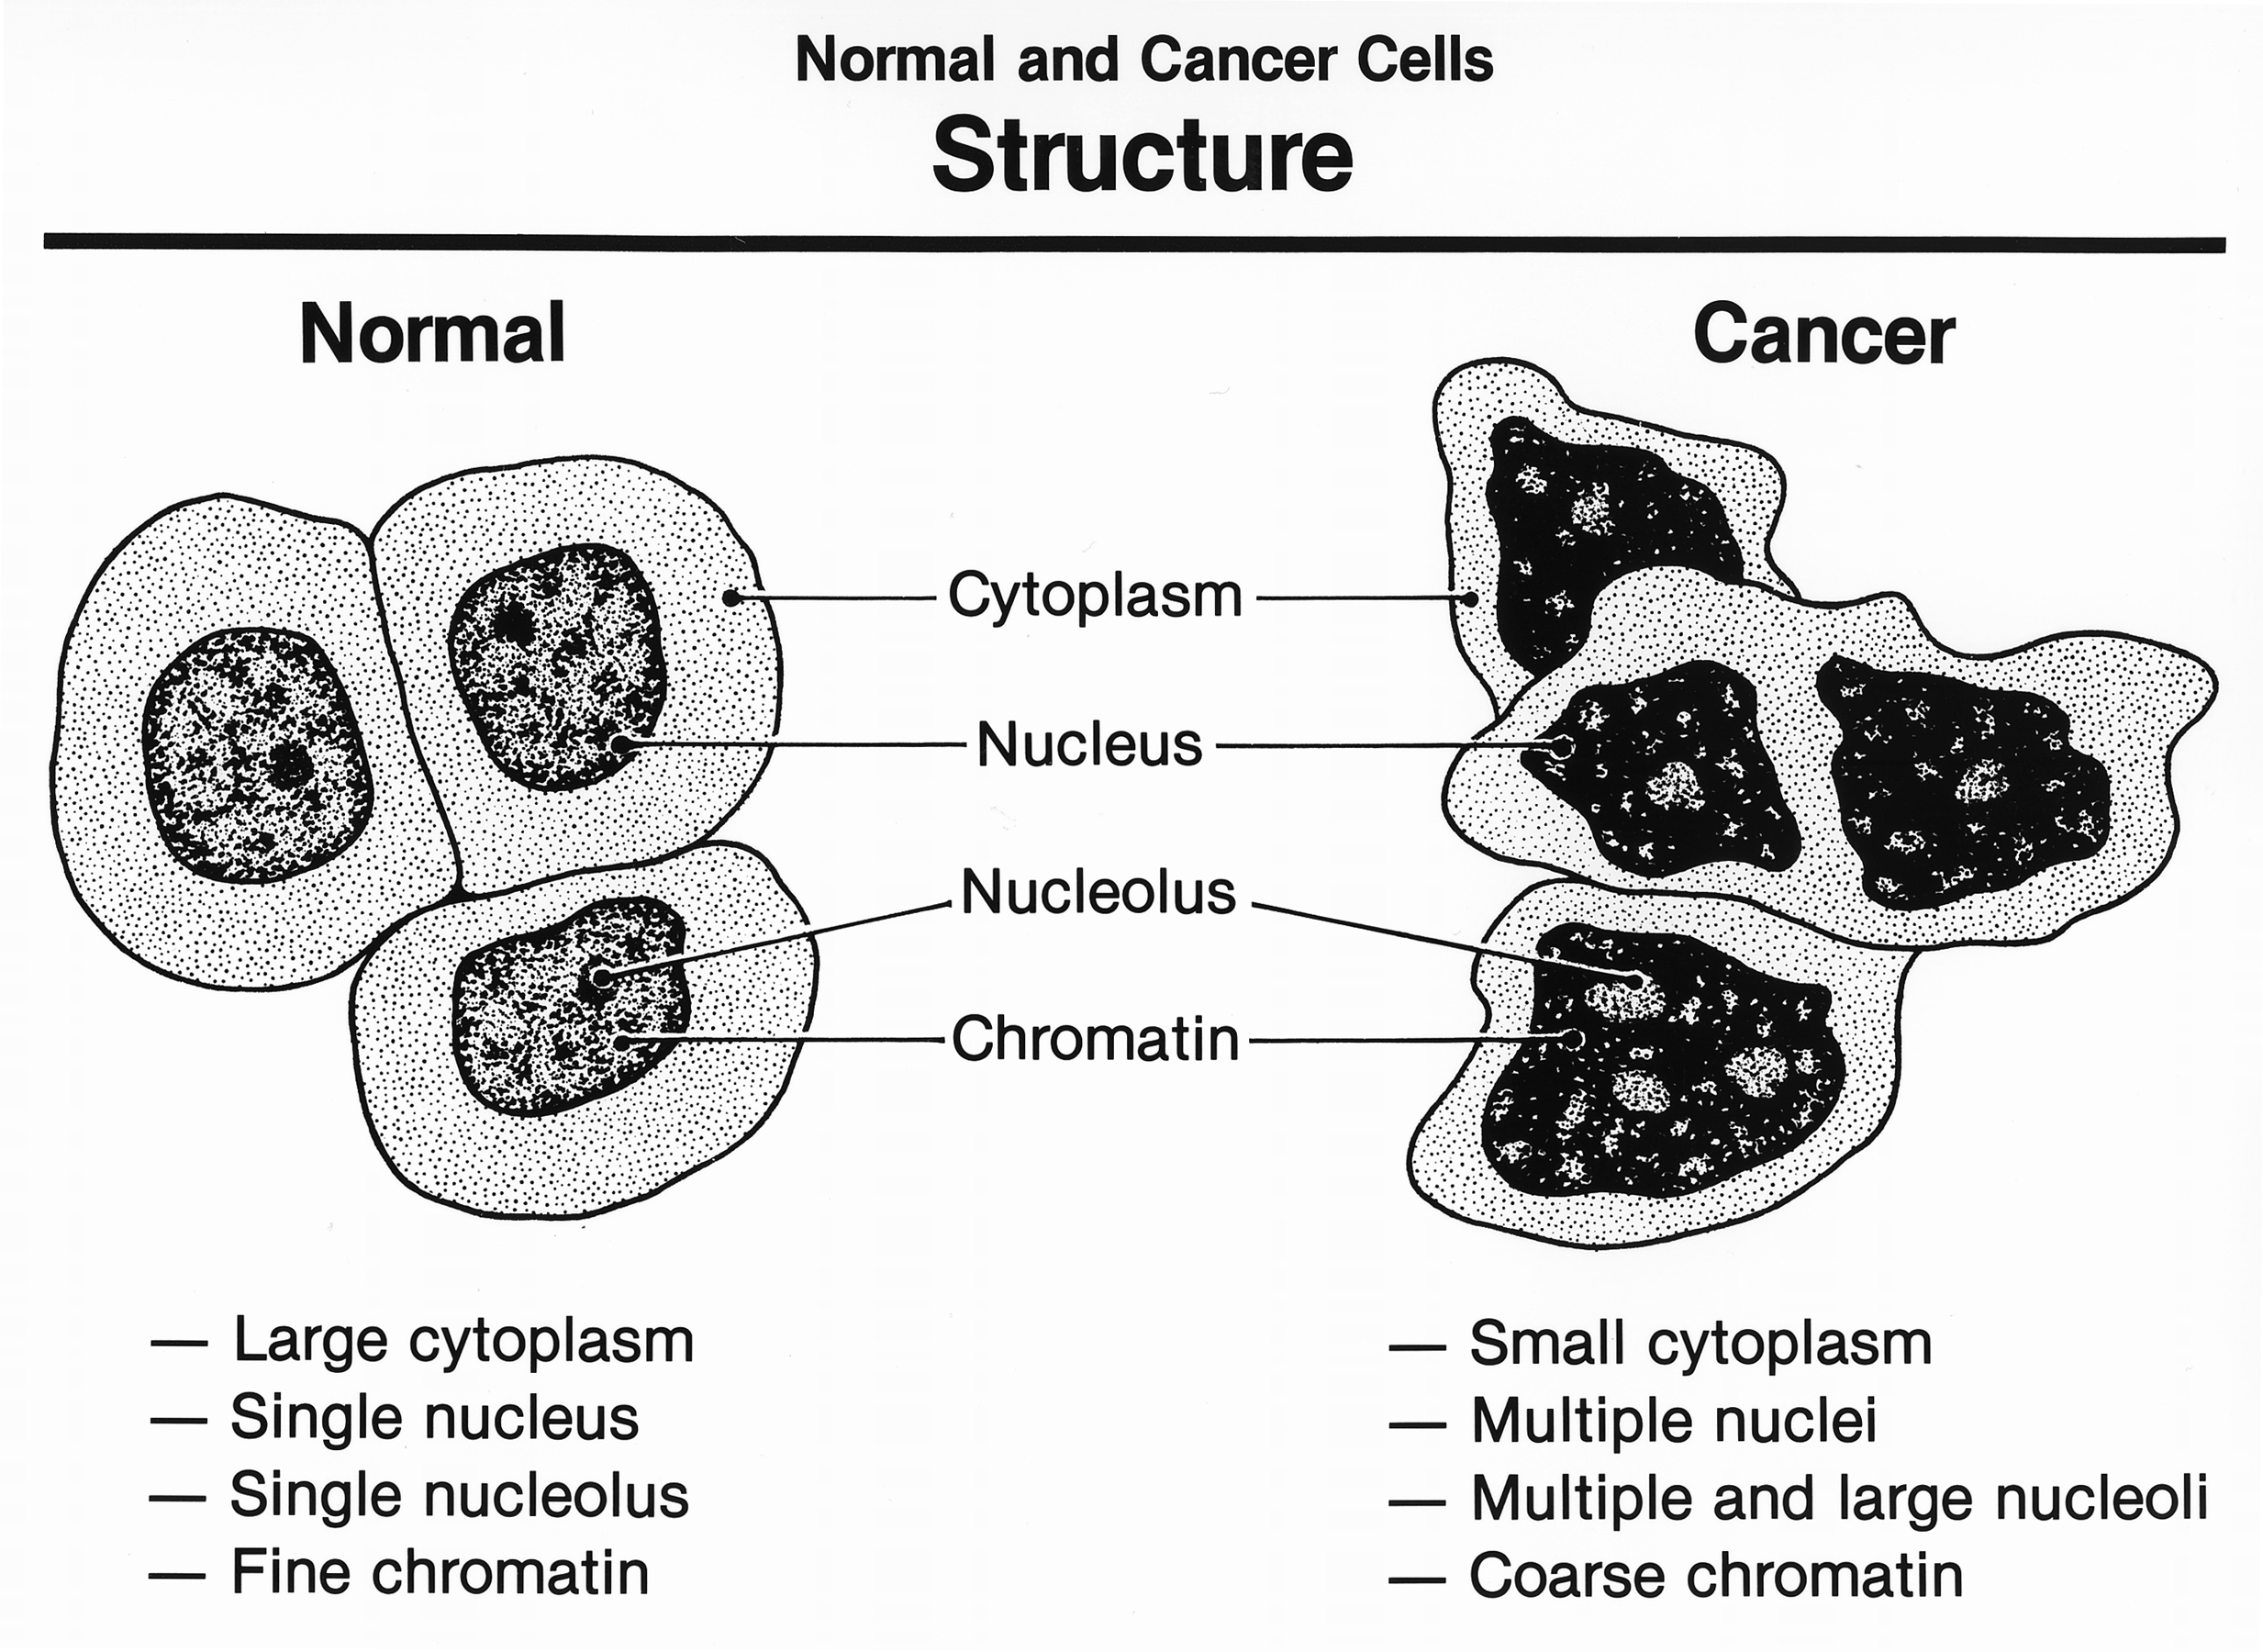 Normal And Cancer Cells Structure Image Details Nci Visuals Online Load Cell Diagram View